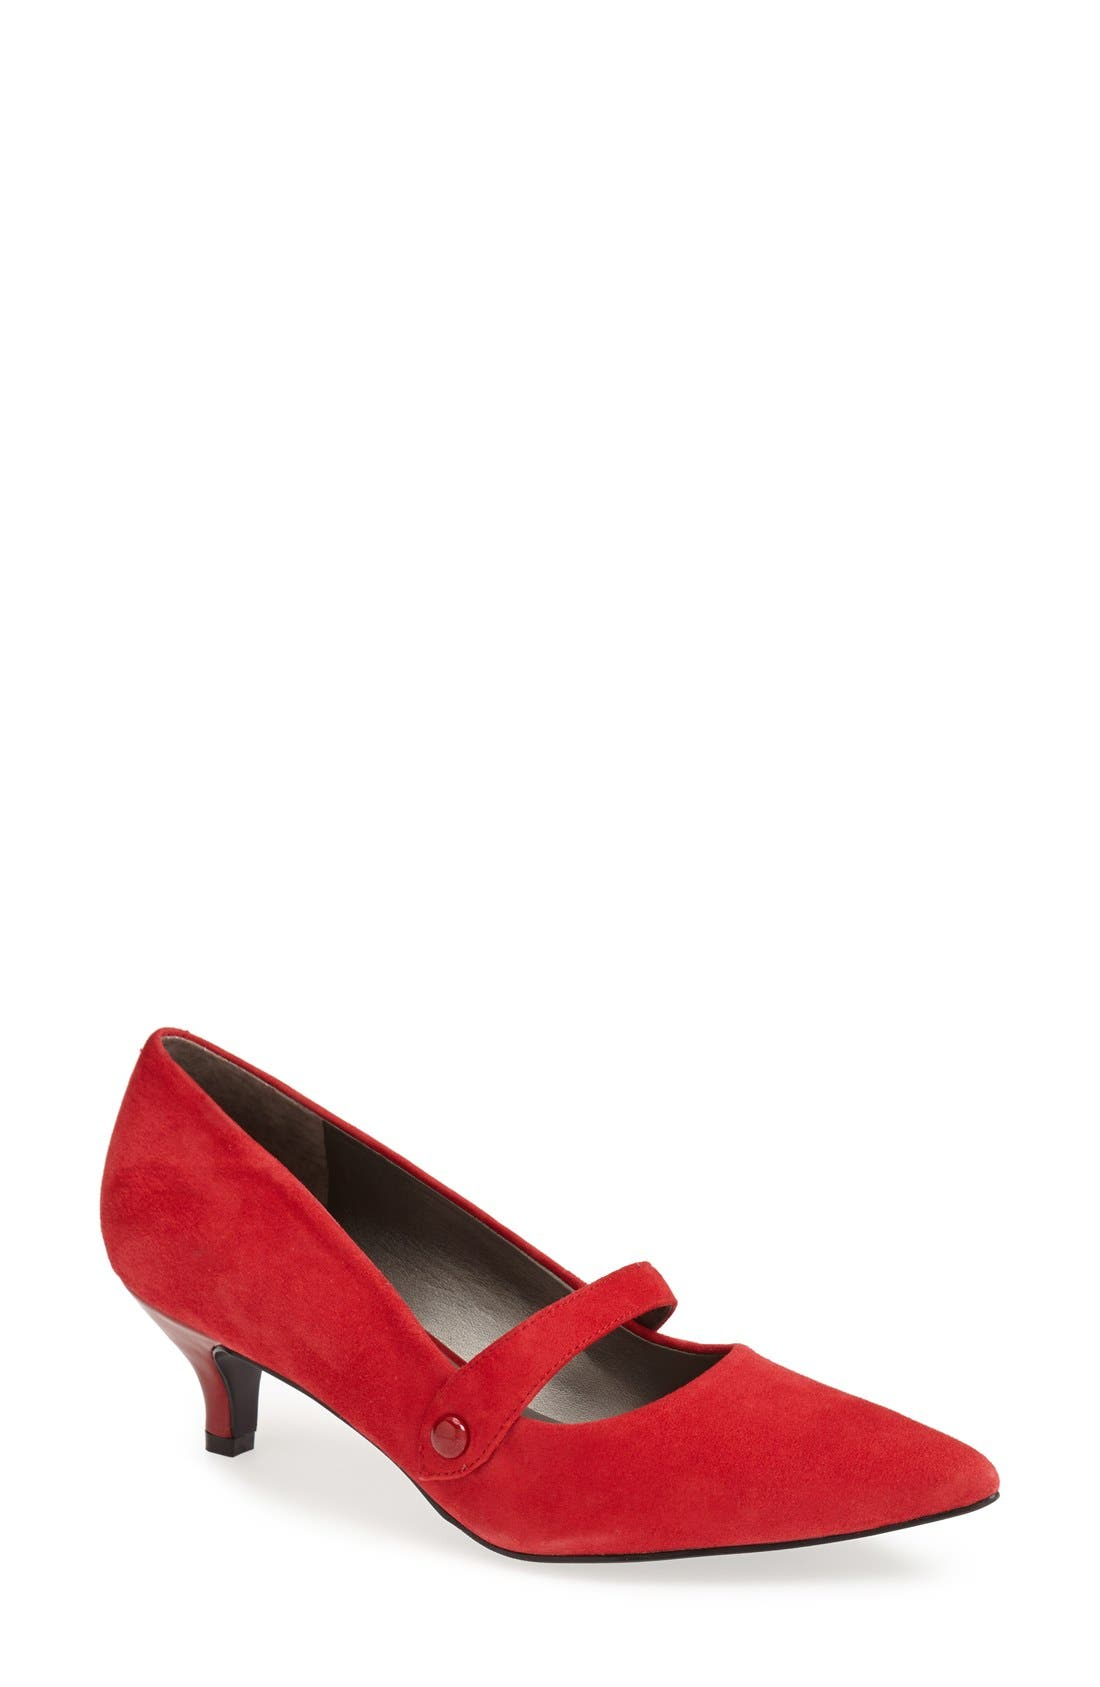 'Petra' Pump,                             Main thumbnail 1, color,                             Red Suede